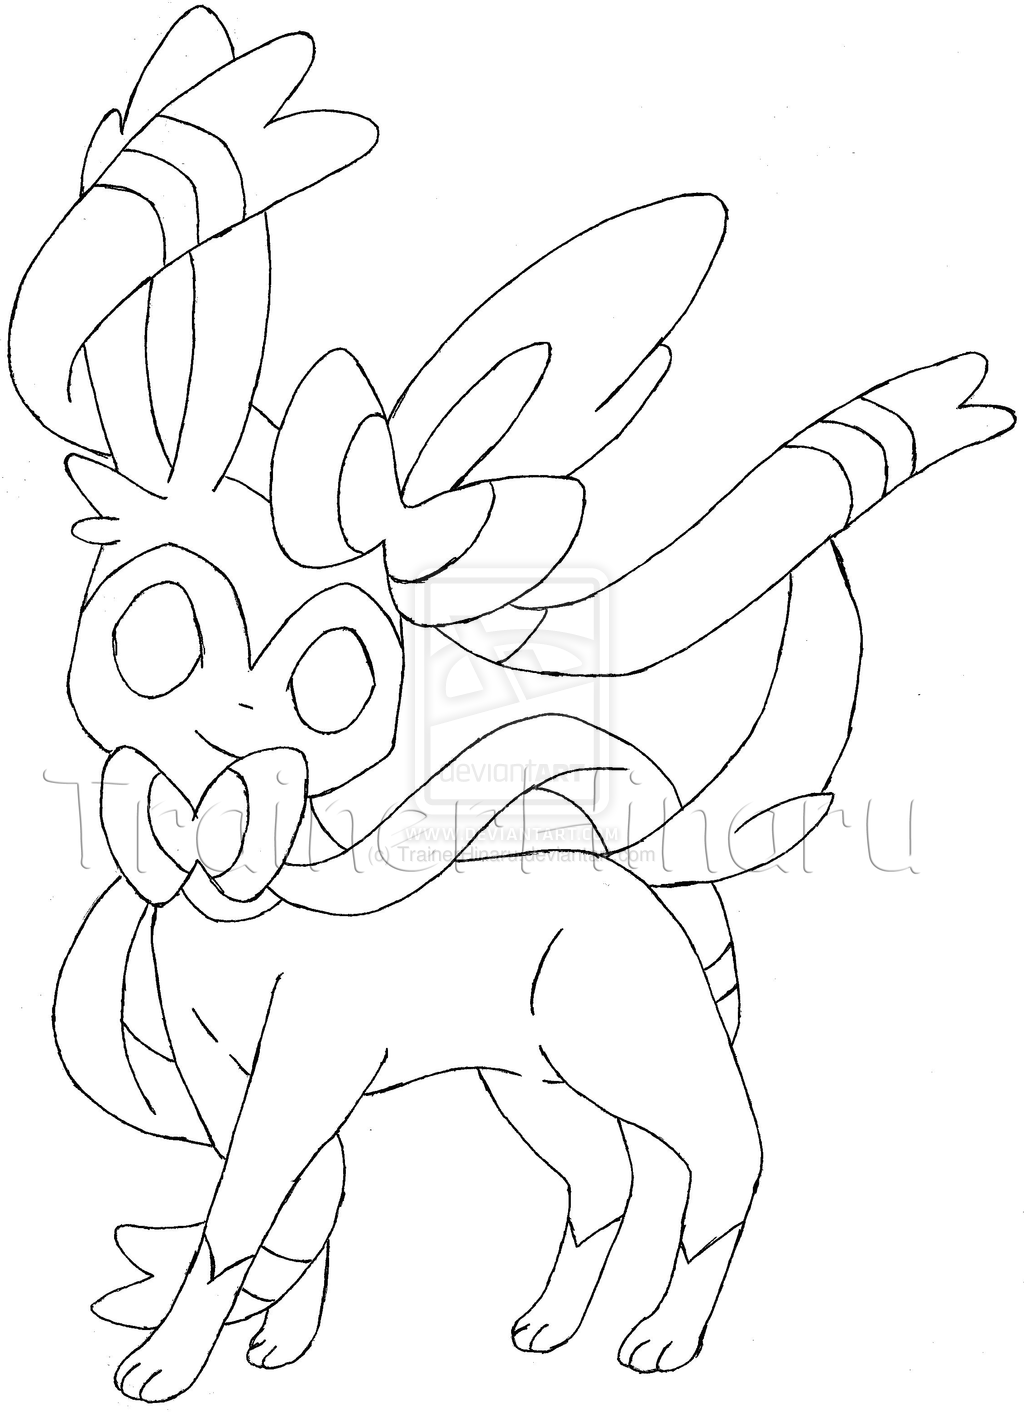 Pokemon flareon coloring pages az coloring pages for Pokemon eevee evolutions coloring pages